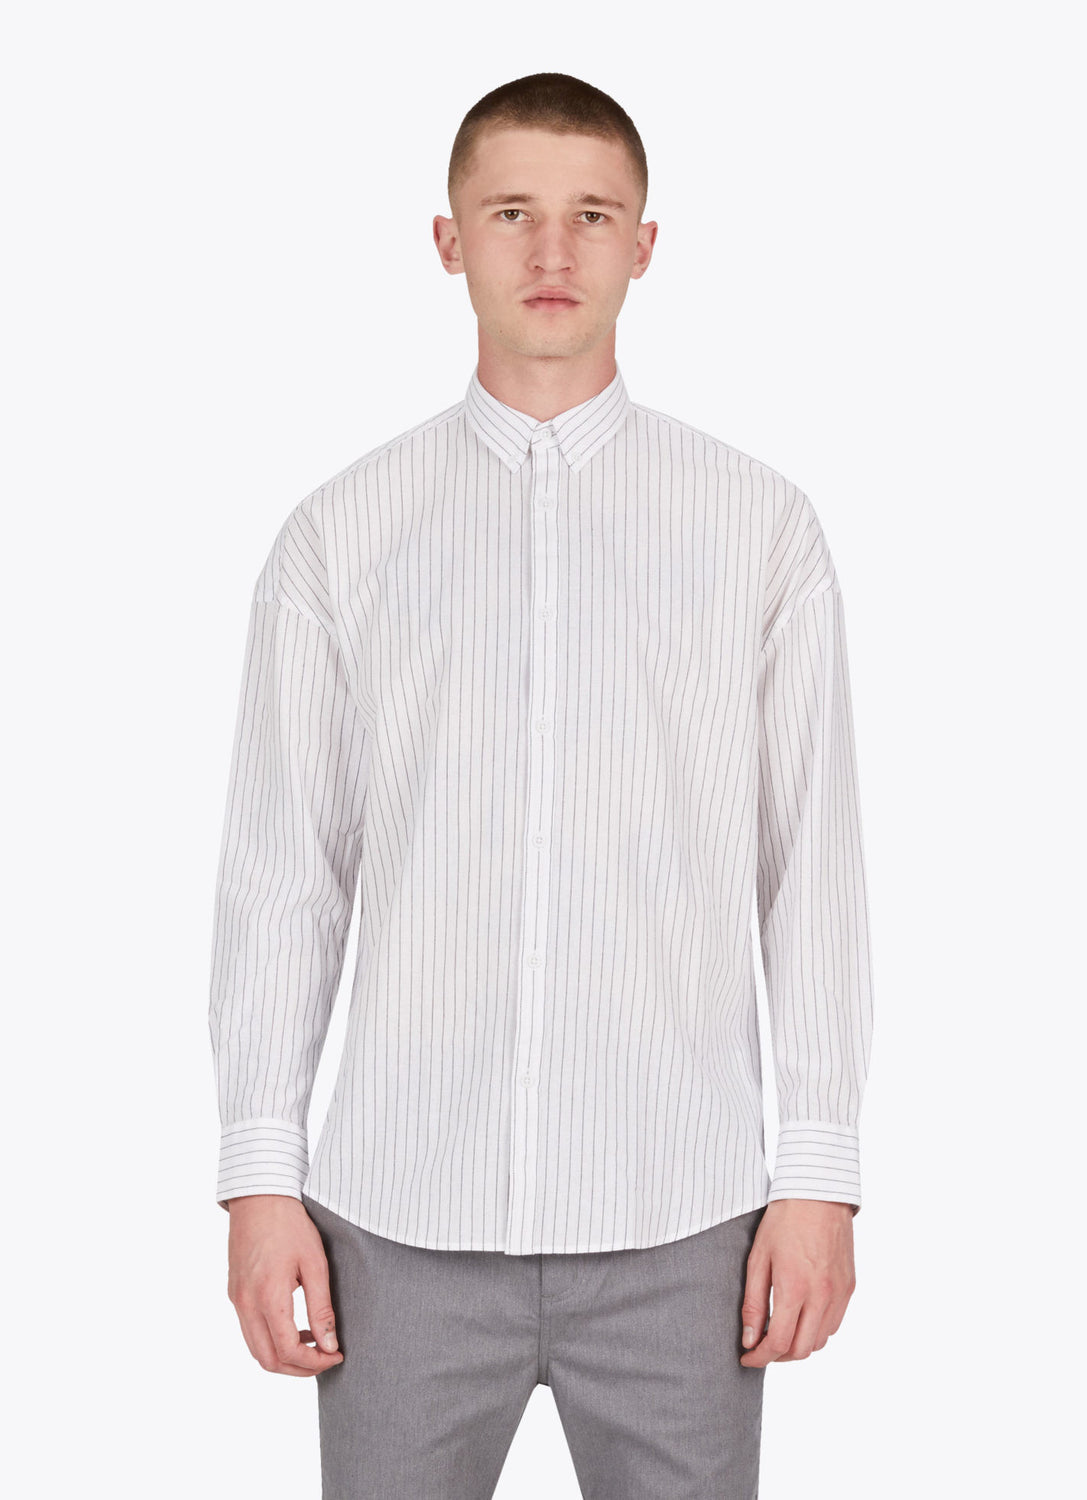 Pinstripe Rugger LS Shirt // White & Black